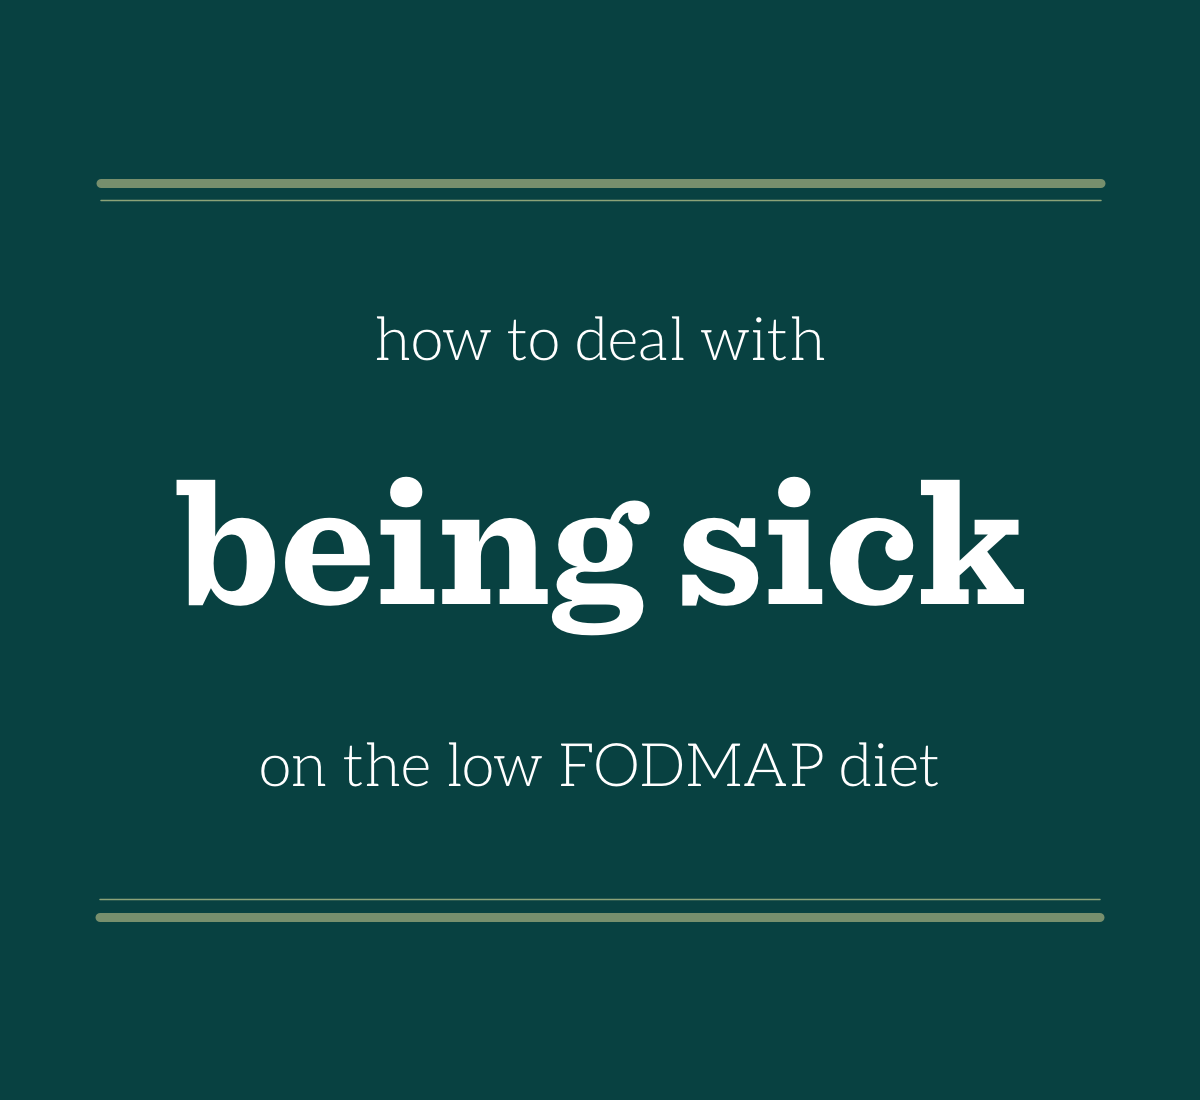 Dealing with sickness on the low FODMAP diet